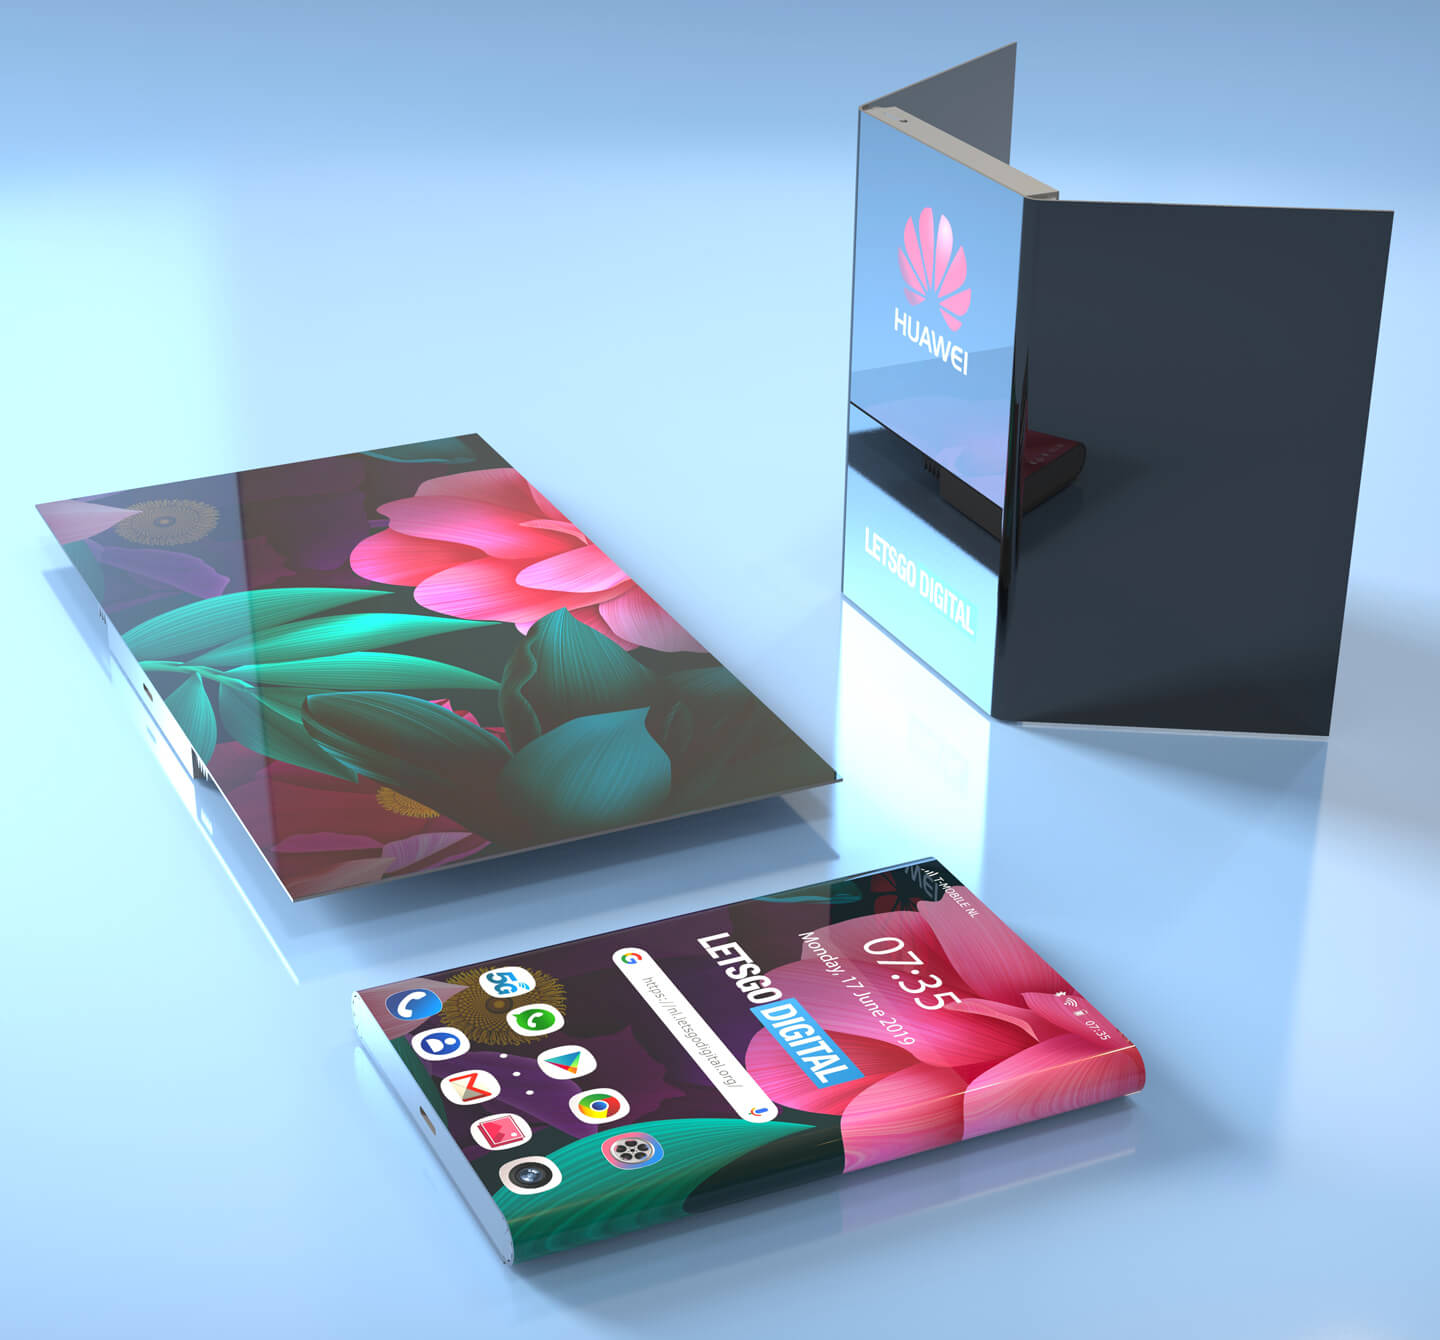 Foldable Huawei phones